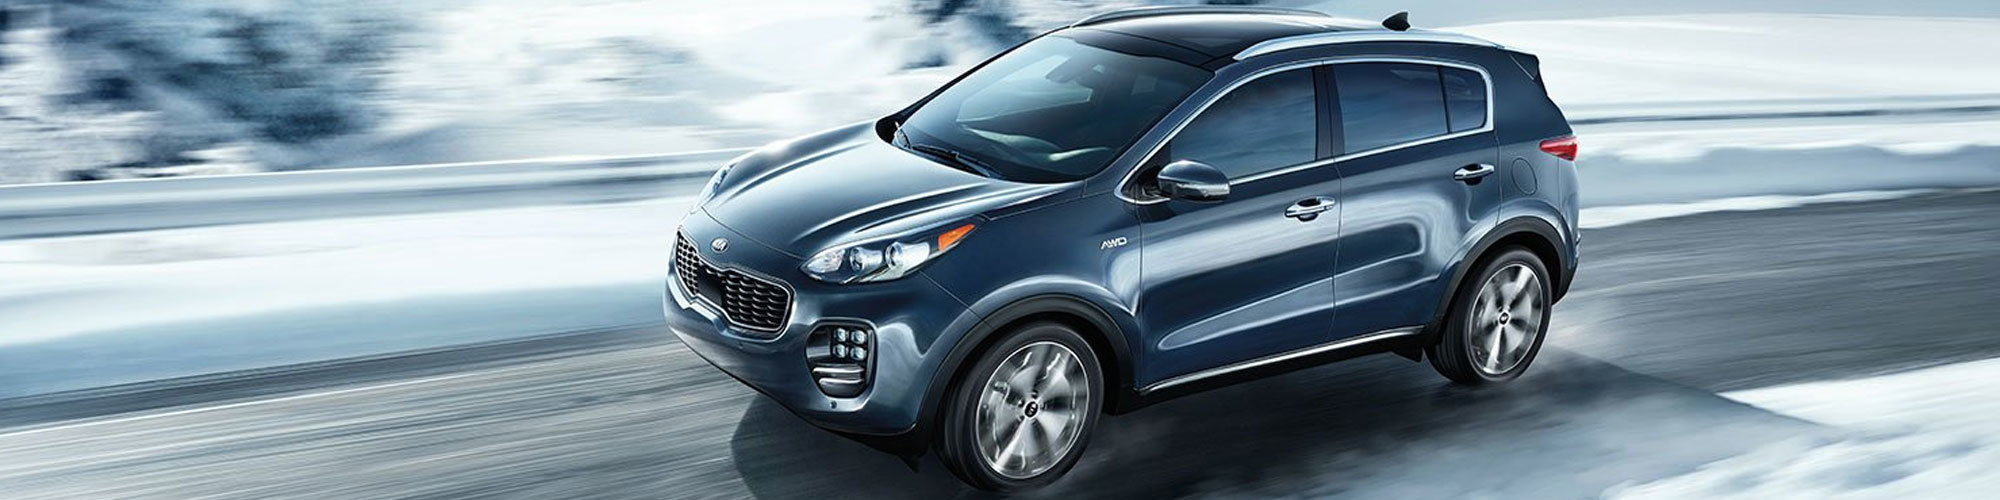 2018 kia sportage suv kia cars for sale in east syracuse ny. Black Bedroom Furniture Sets. Home Design Ideas